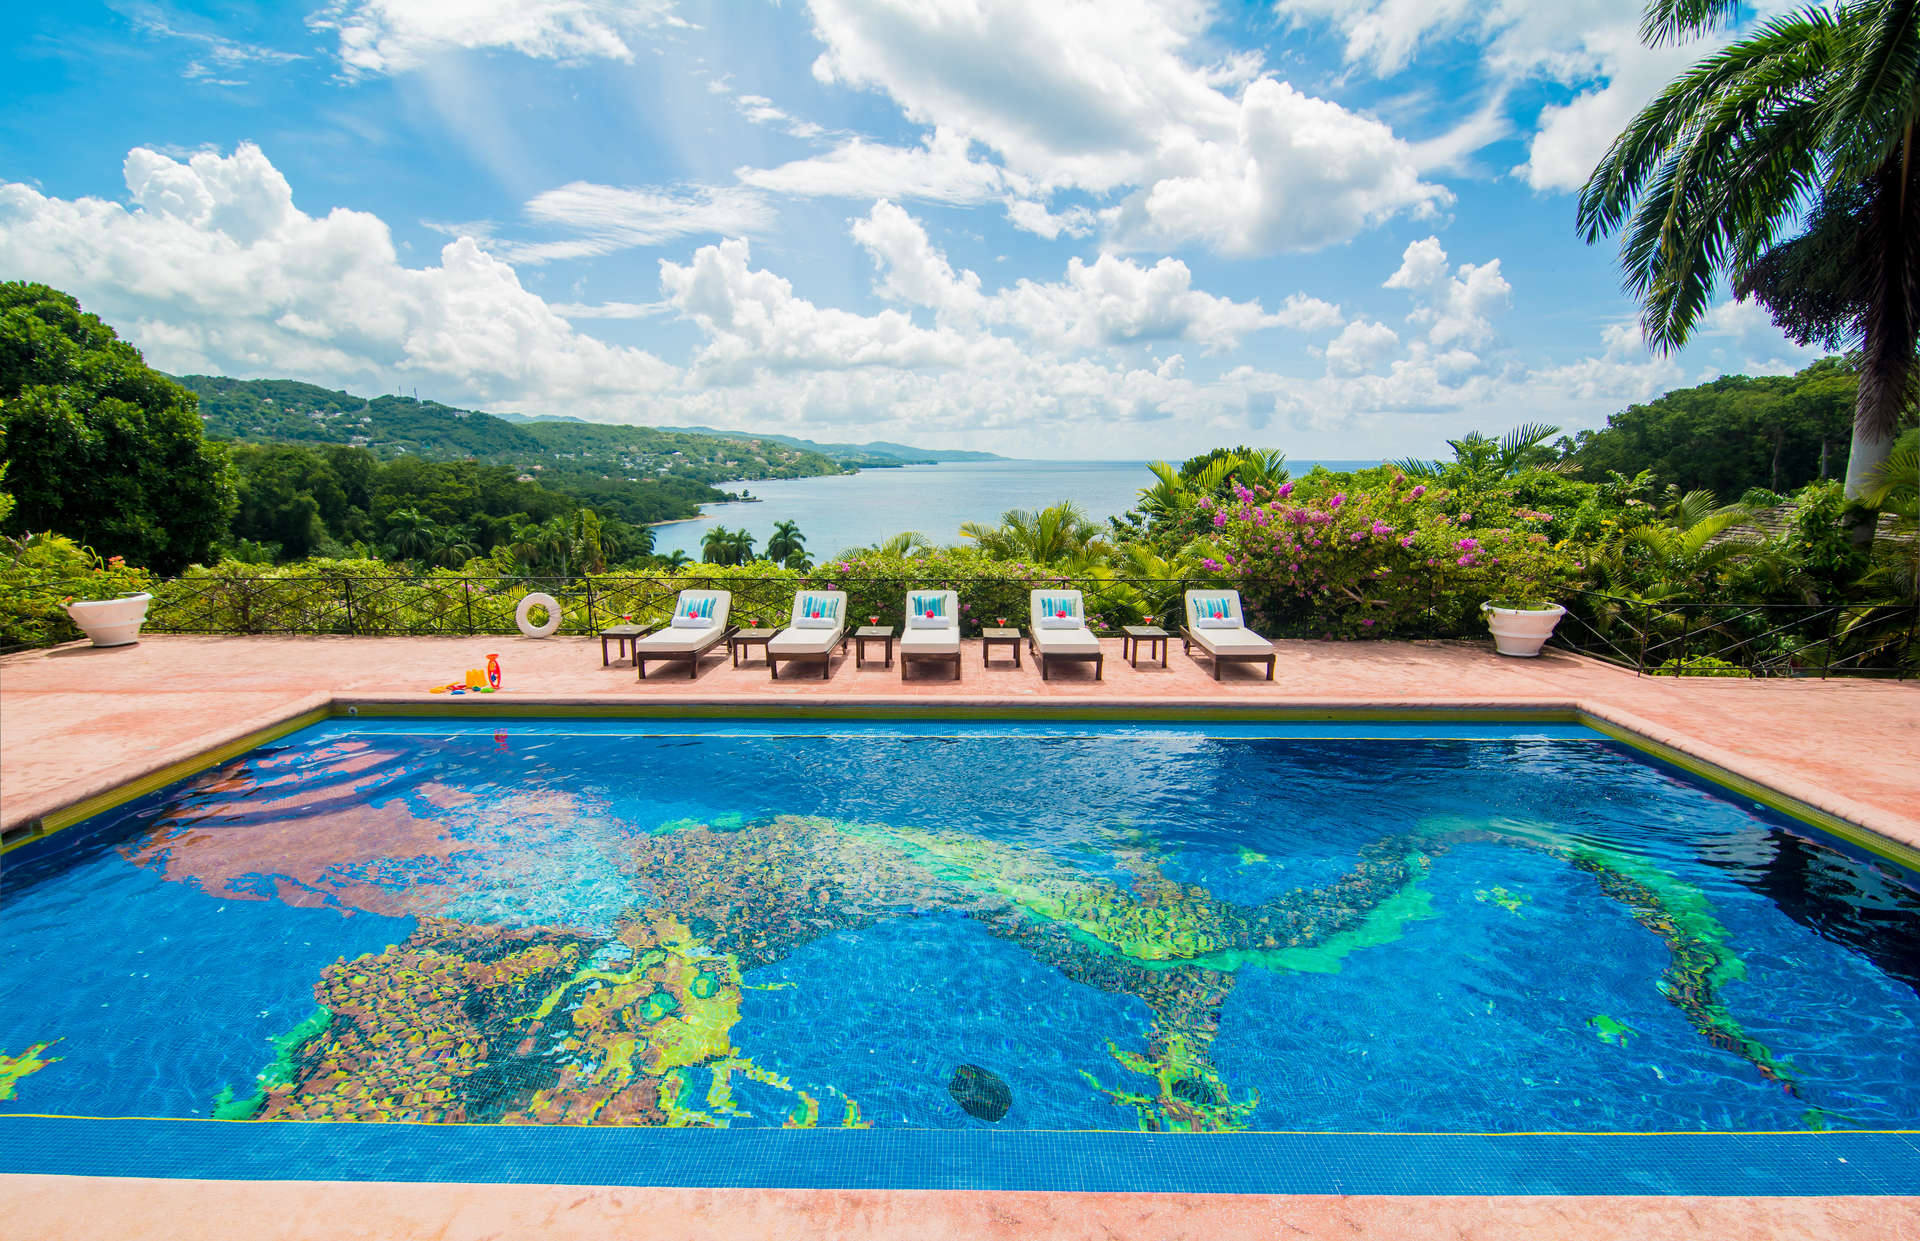 Luxury villa rentals caribbean - Jamaica - Round hill resort - No location 4 - Knockando - Image 1/10